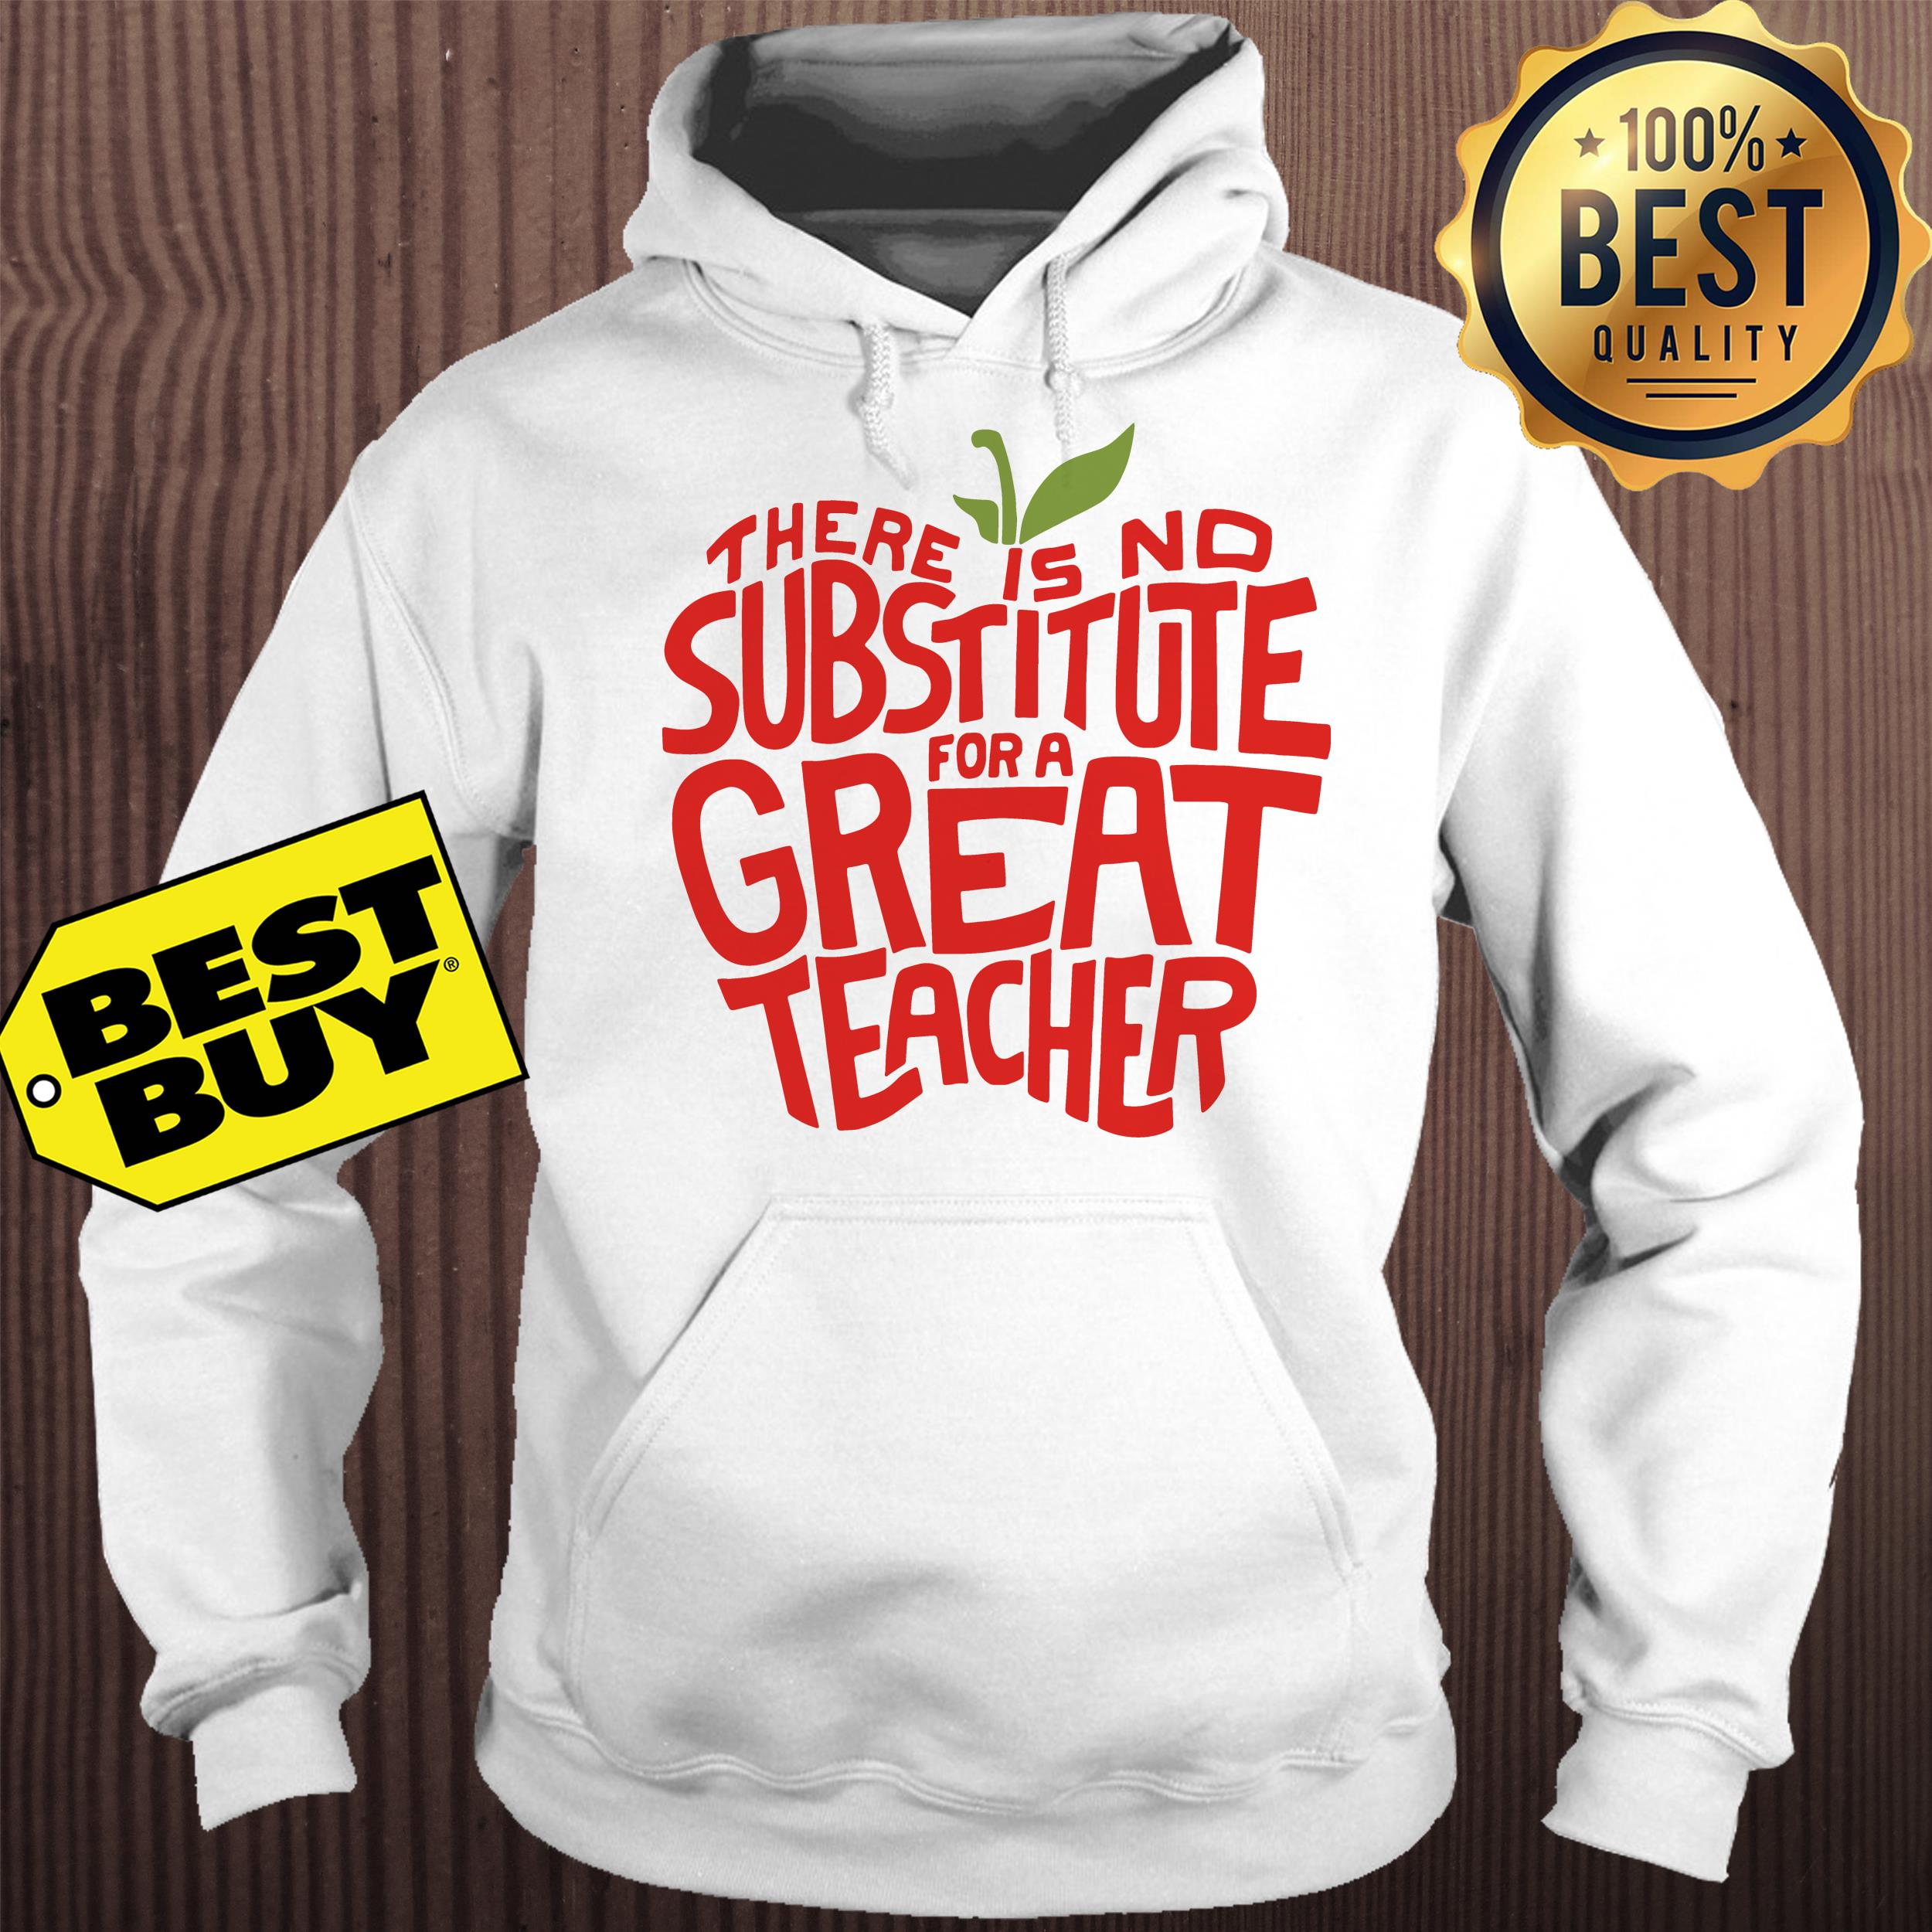 There is no substitute for a great teacher hoodie